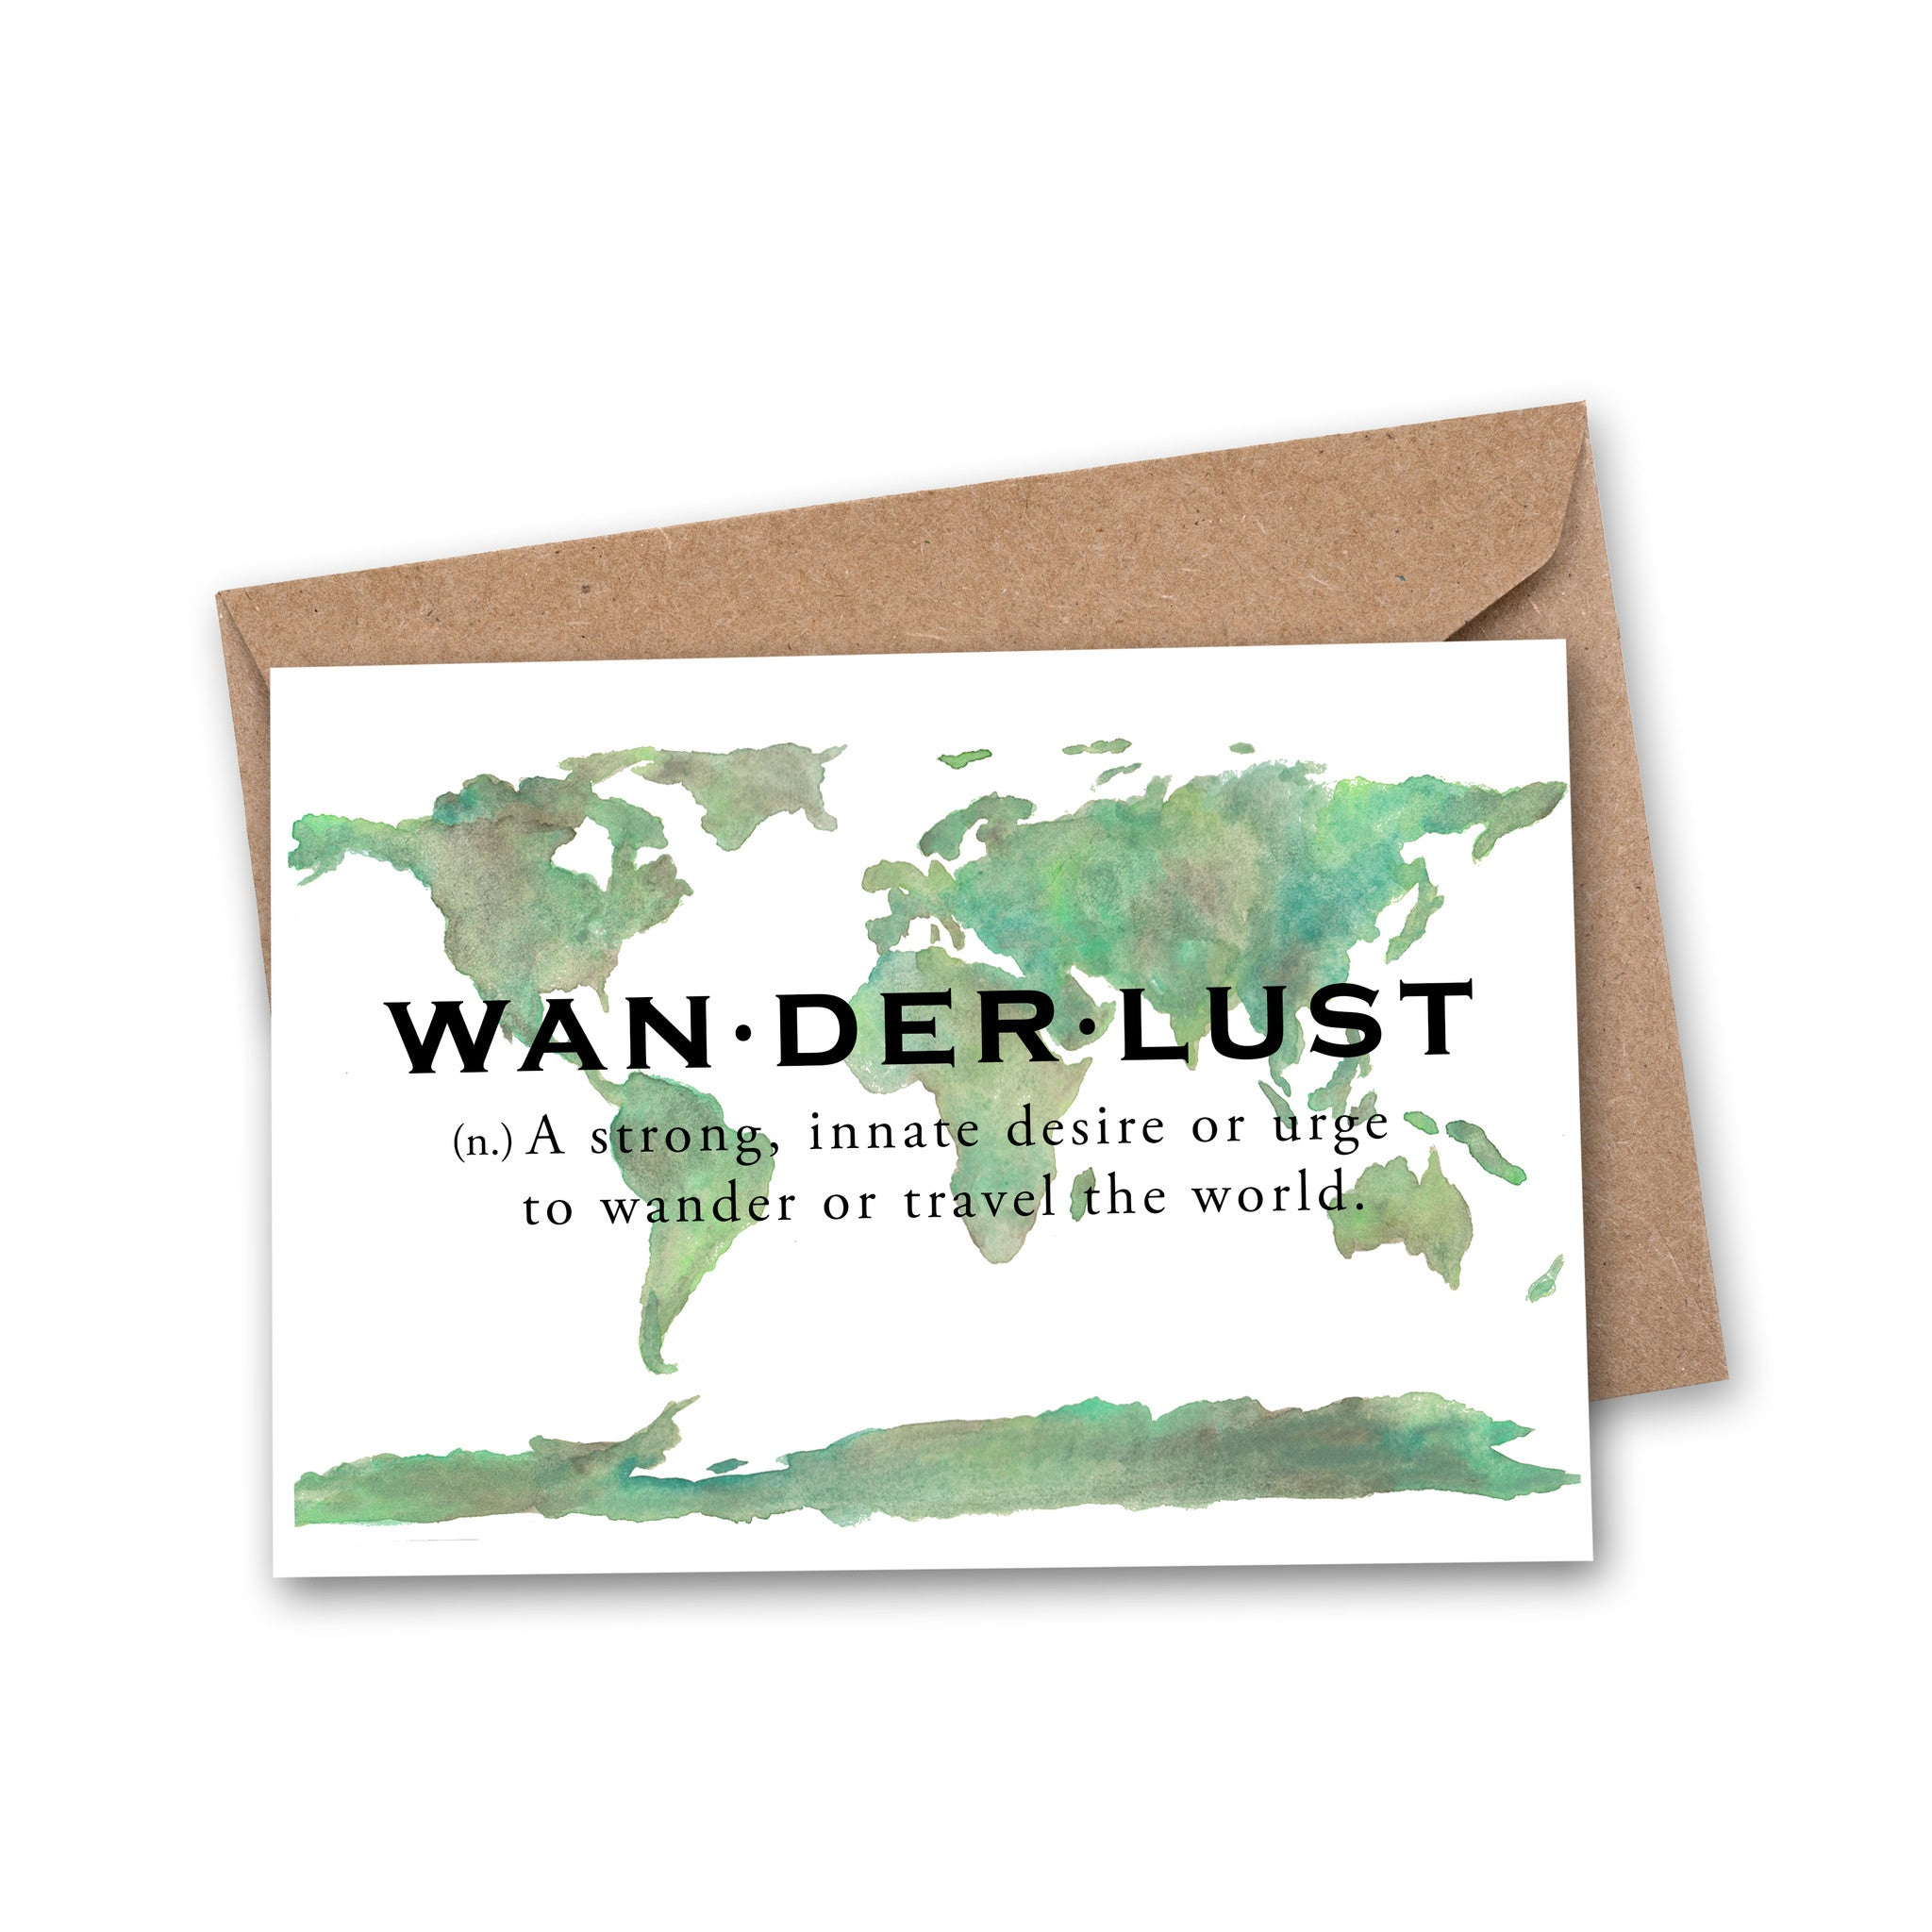 WANDERLUST: (n.) A strong, innate desire or urge to wander or travel the world in black block font, with original watercolor painting of world in background.